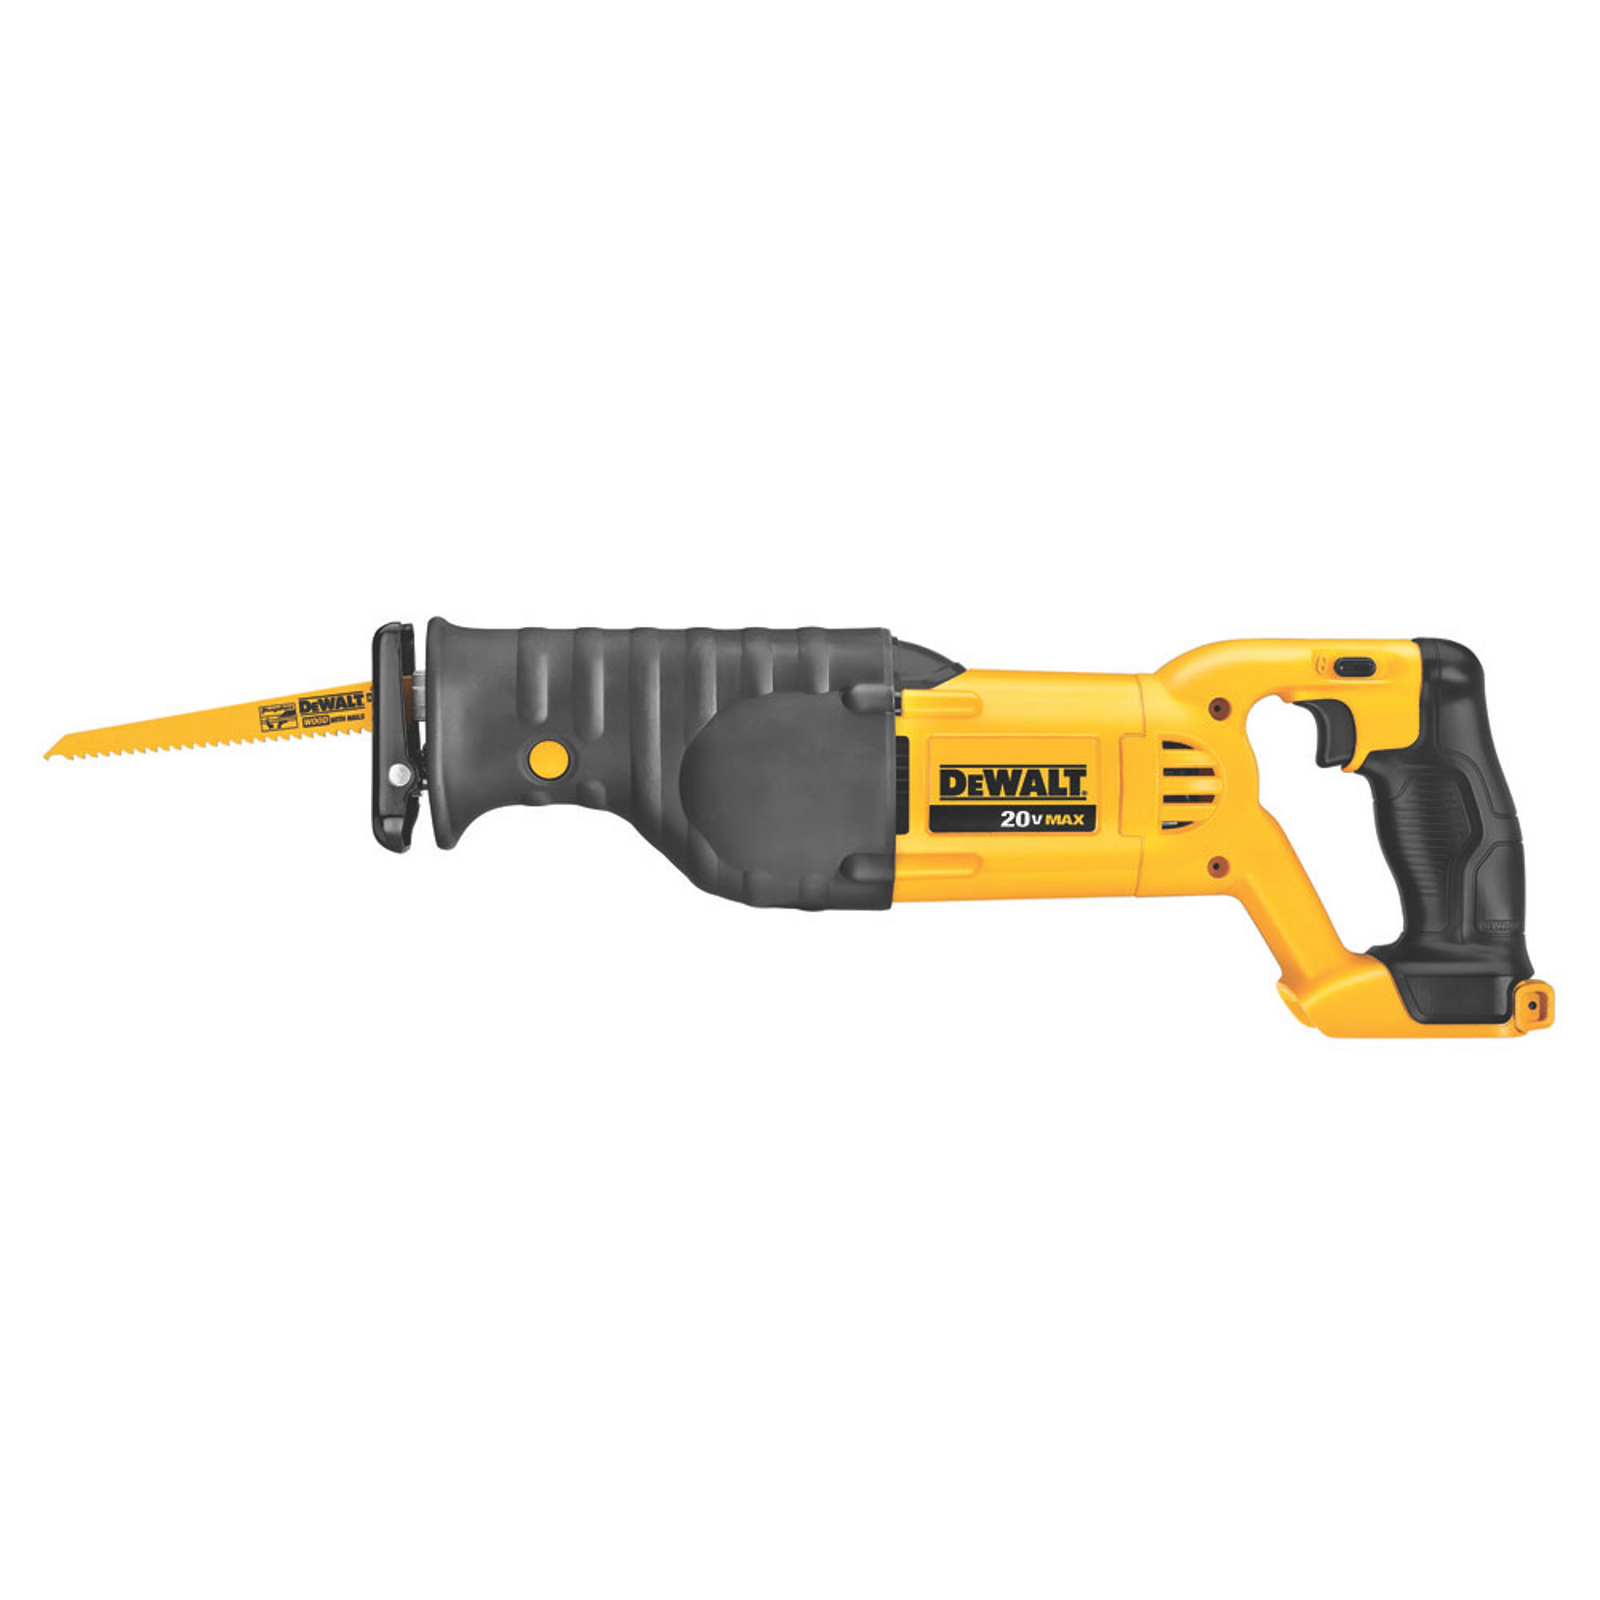 Wire Saw Bunnings Dewalt Bare Tool Dcs380b 20 Volt Max Li Ion Reciprocating